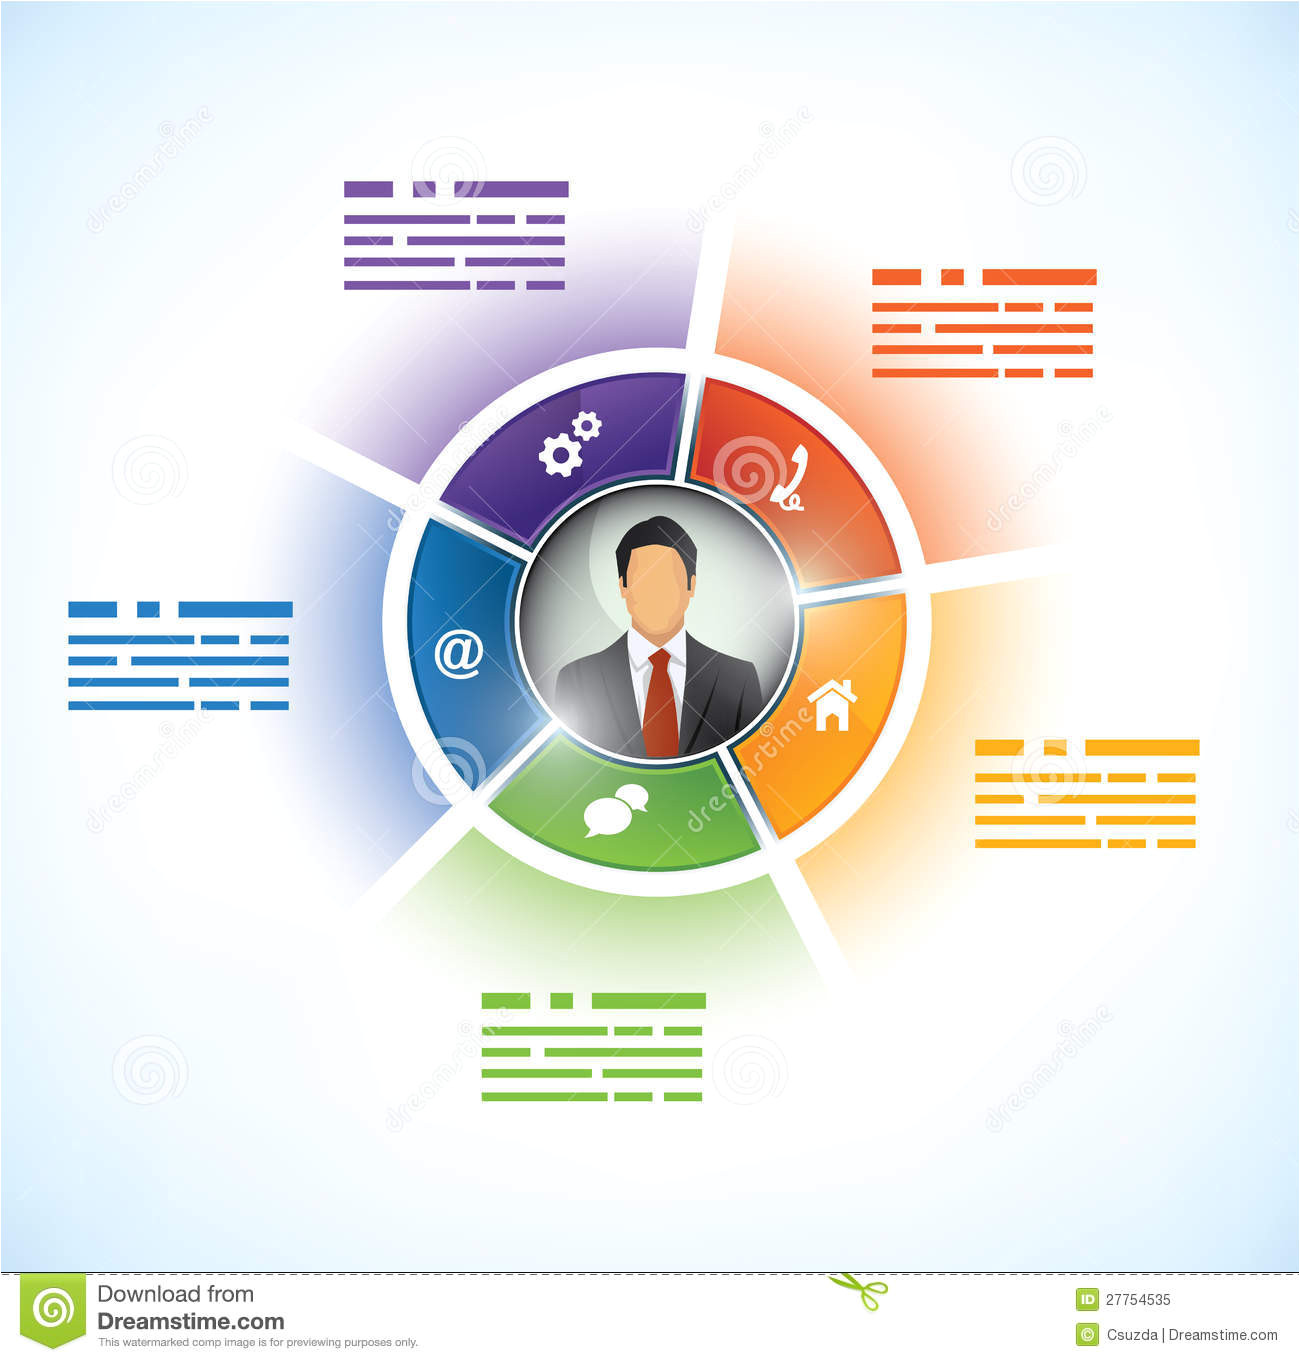 How to Download Powerpoint Templates From Microsoft Presentation Template with Avatar Stock Vector Image